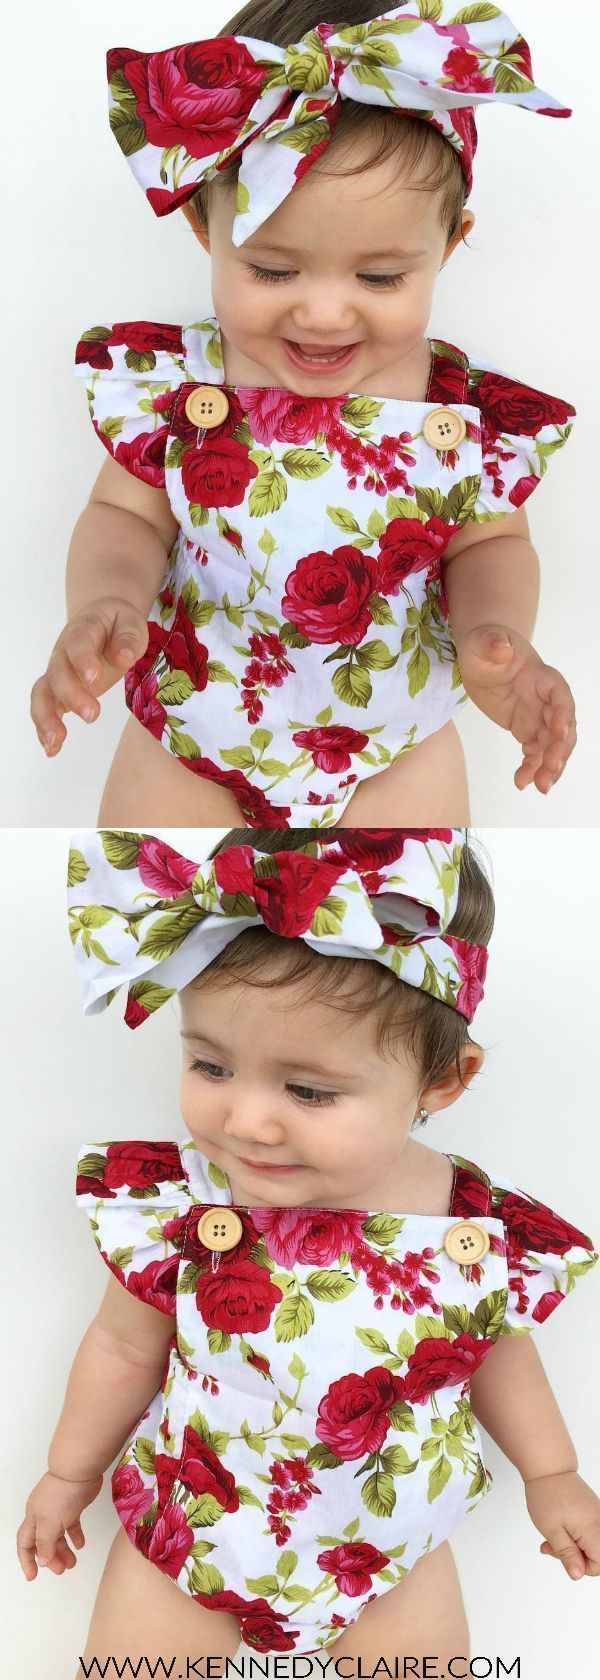 Adorable floral romper is the perfect outfit for trendy little ones! Shop our selection of baby girl clothes and baby girl rompers! #PregnancyOutfits #KidsFashion #littlegirloutfits